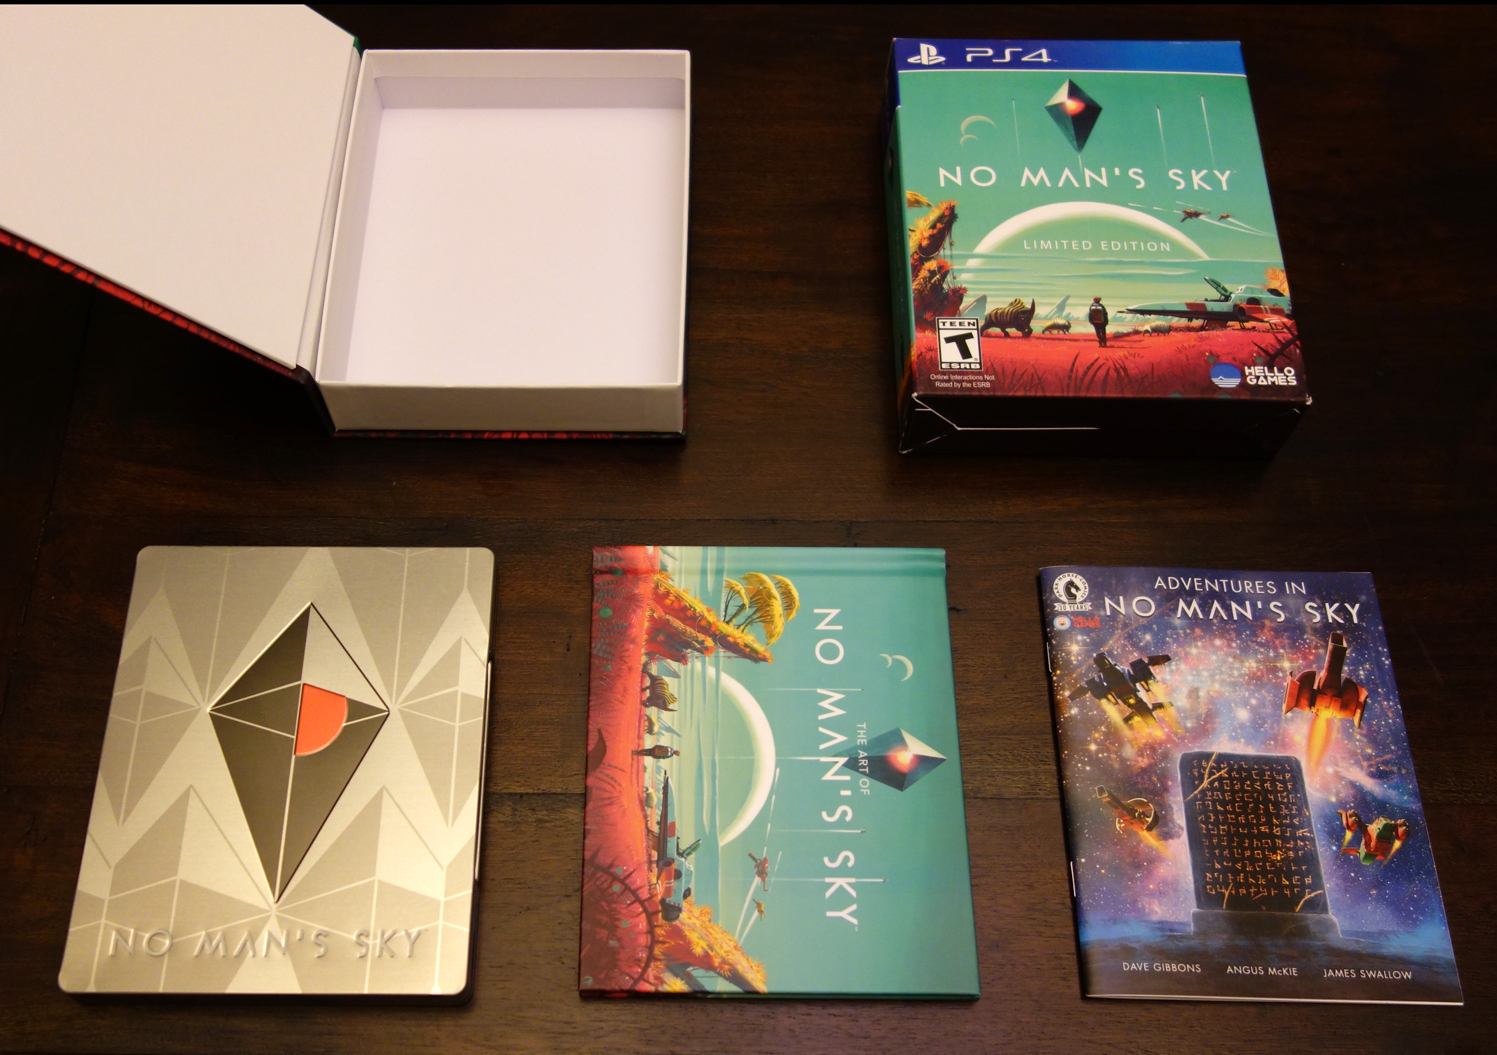 'No Man's Sky - Limited Edition PS4 contents art book comic